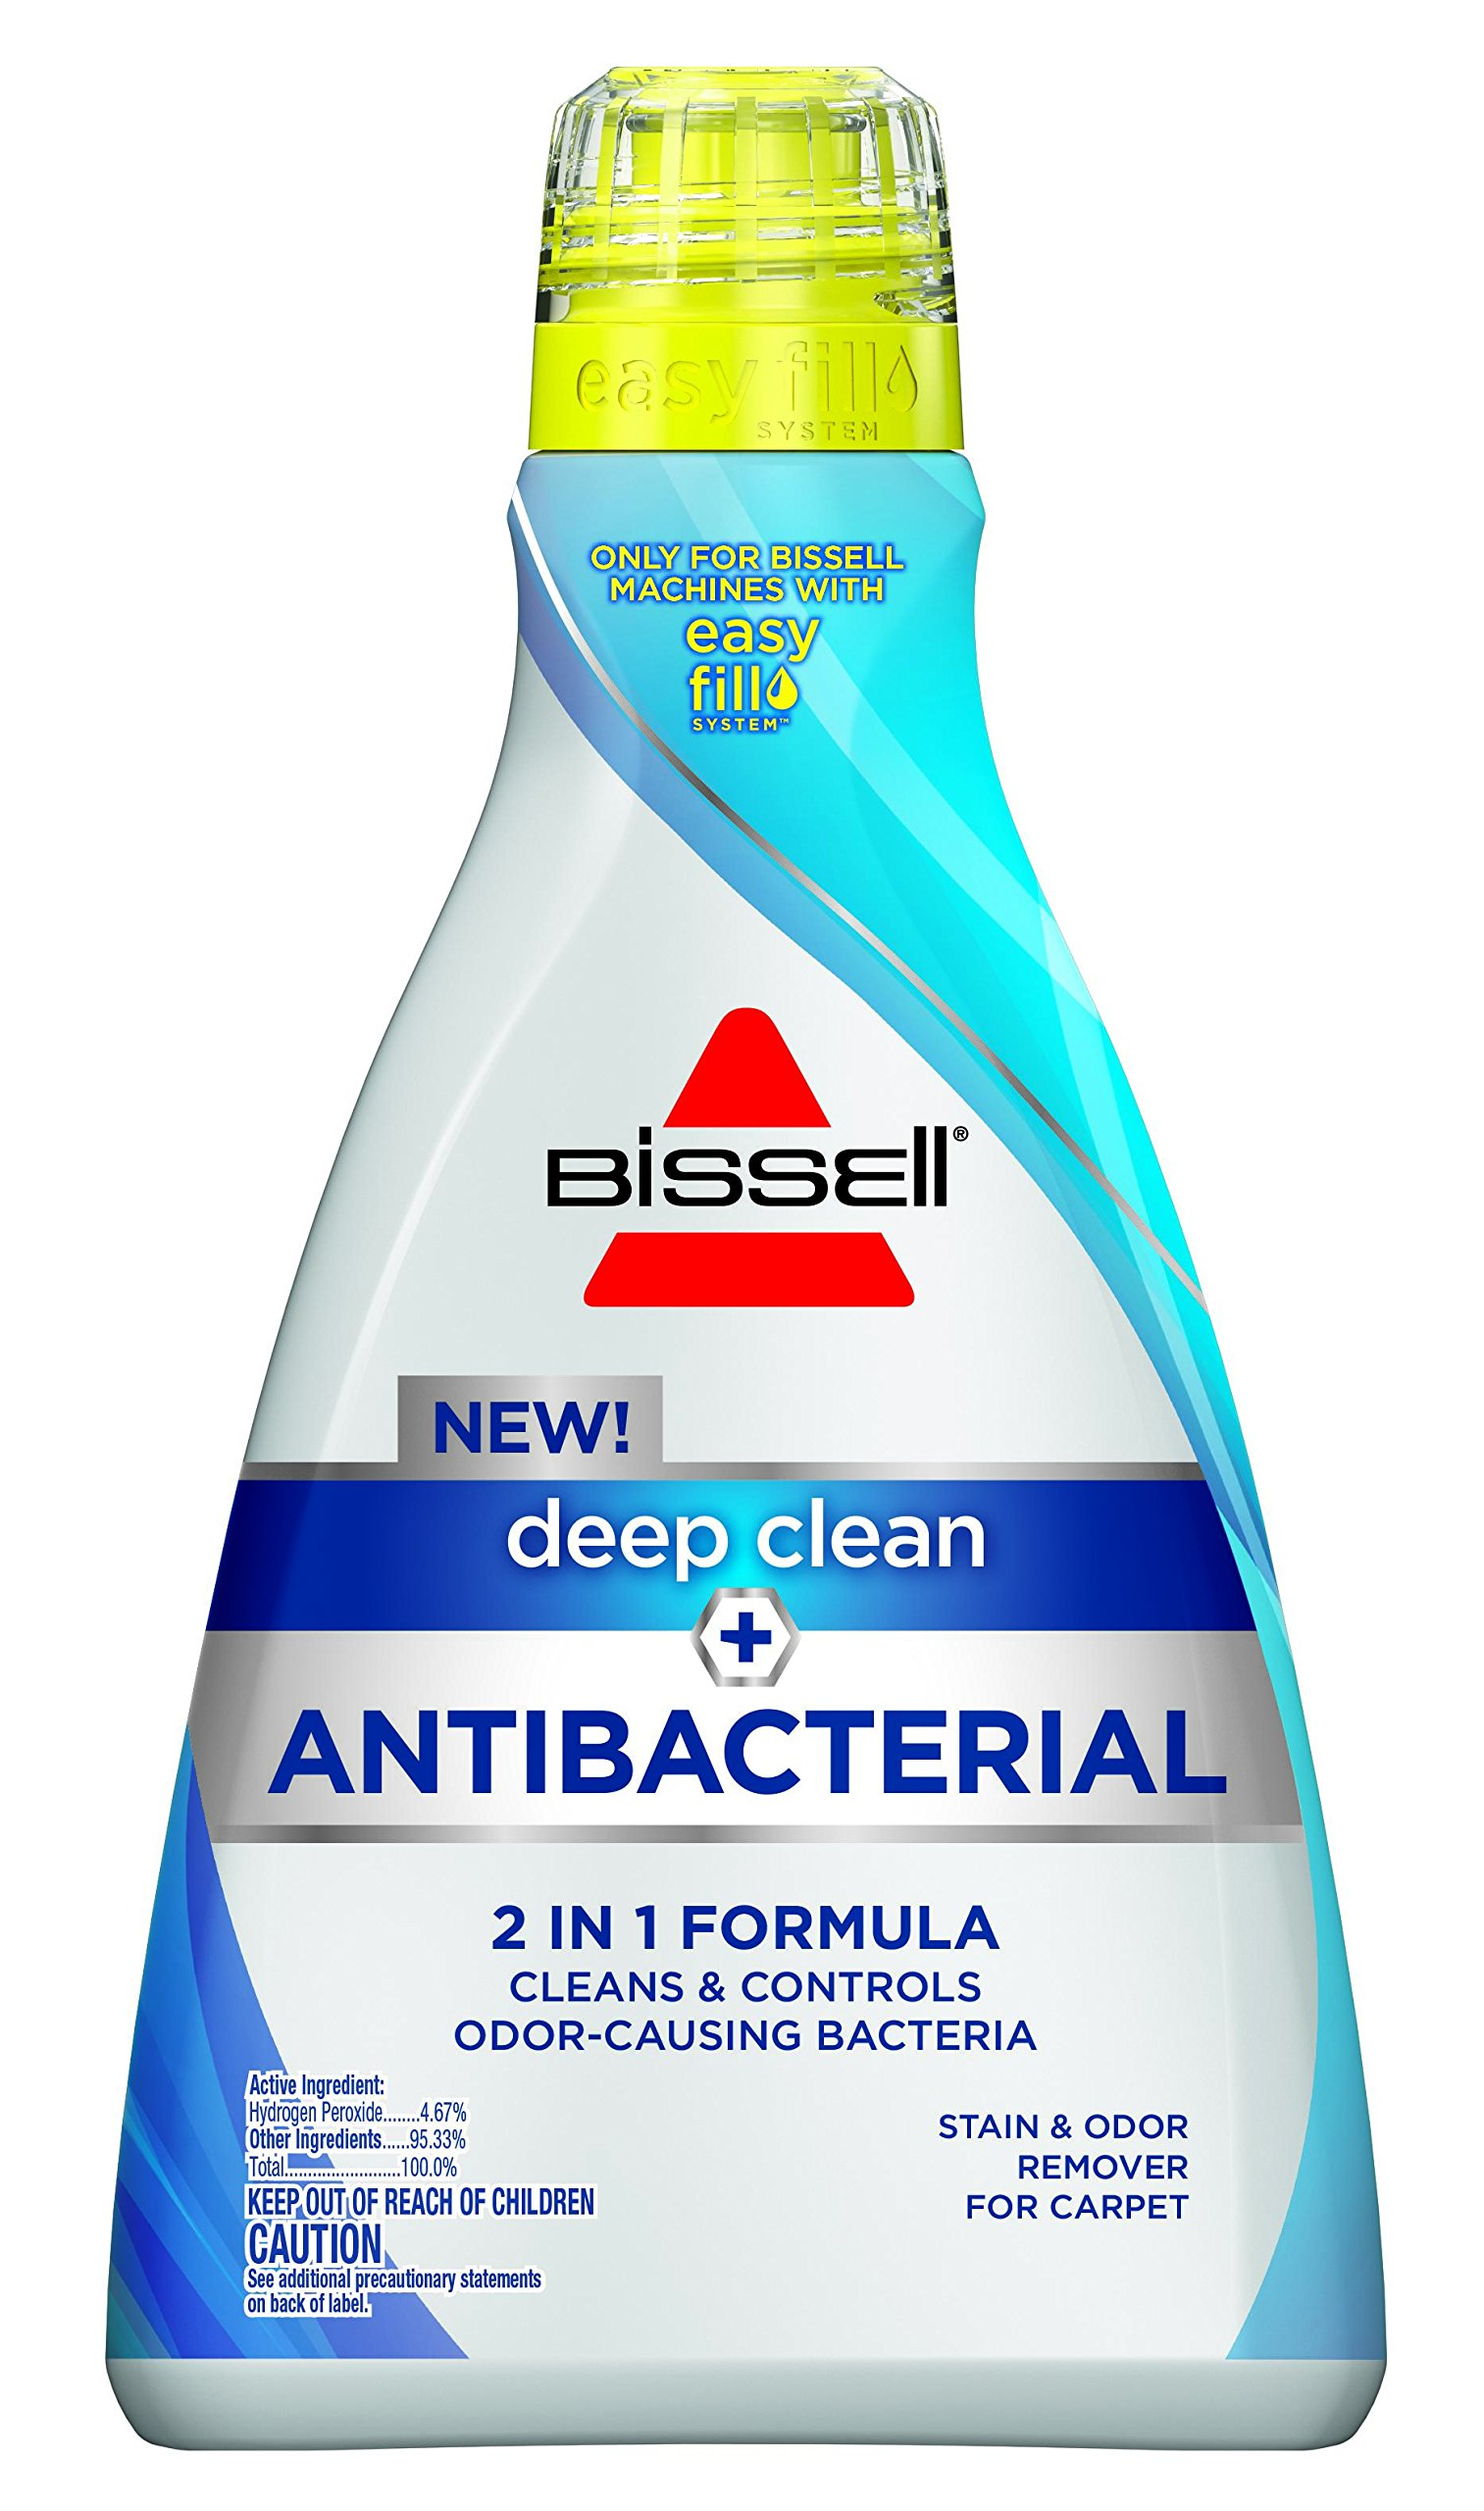 Bissell Antibacterial 2-in-1 Carpet Cleaner by Bissell